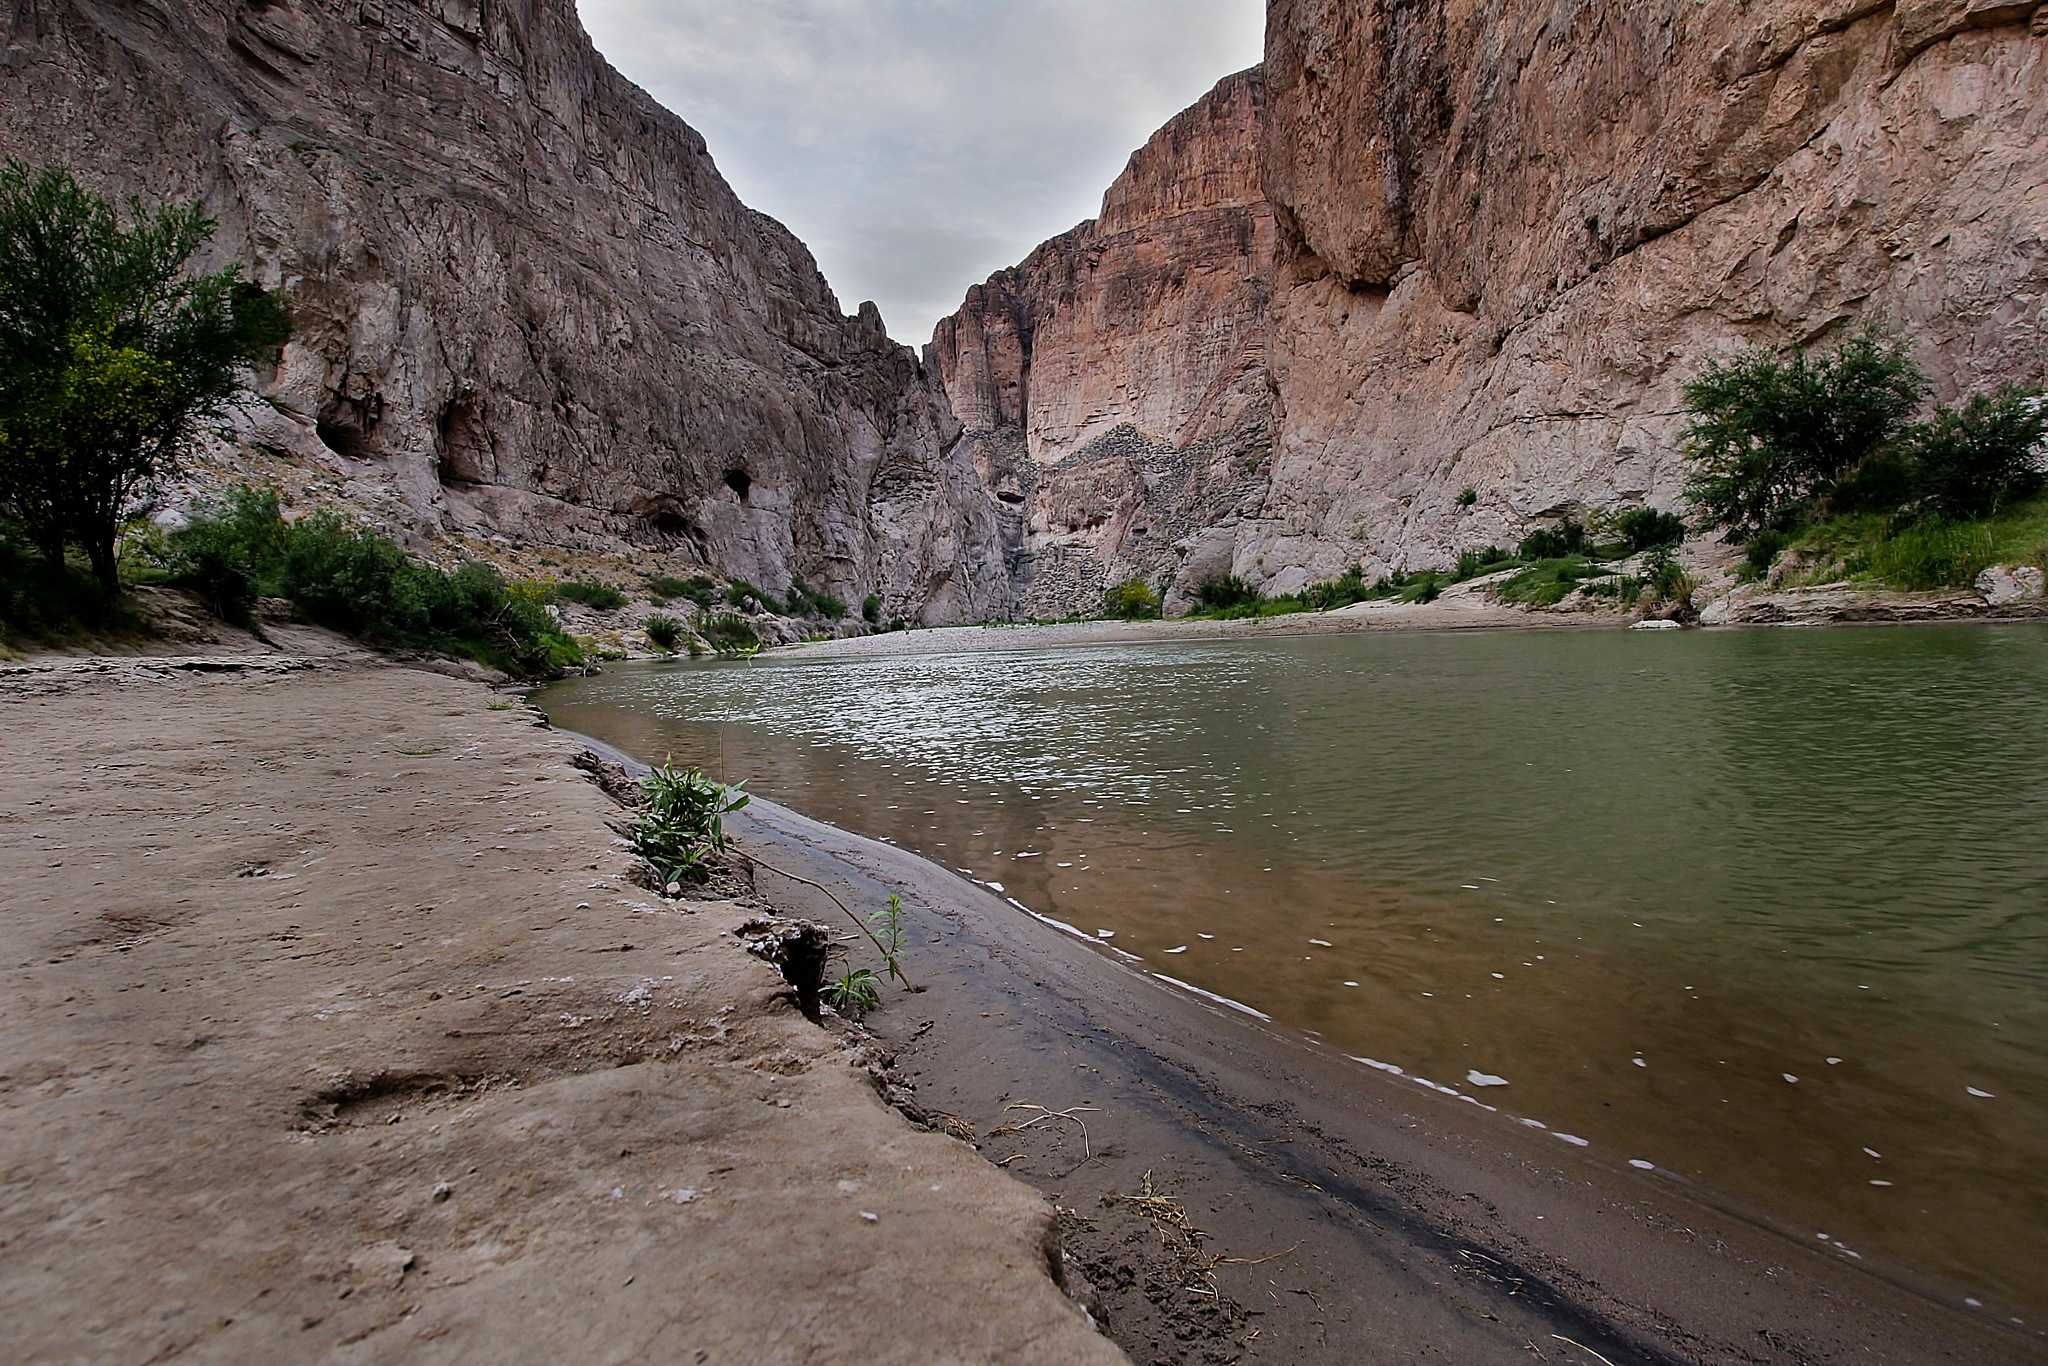 Bouquillas Canyon by kstand